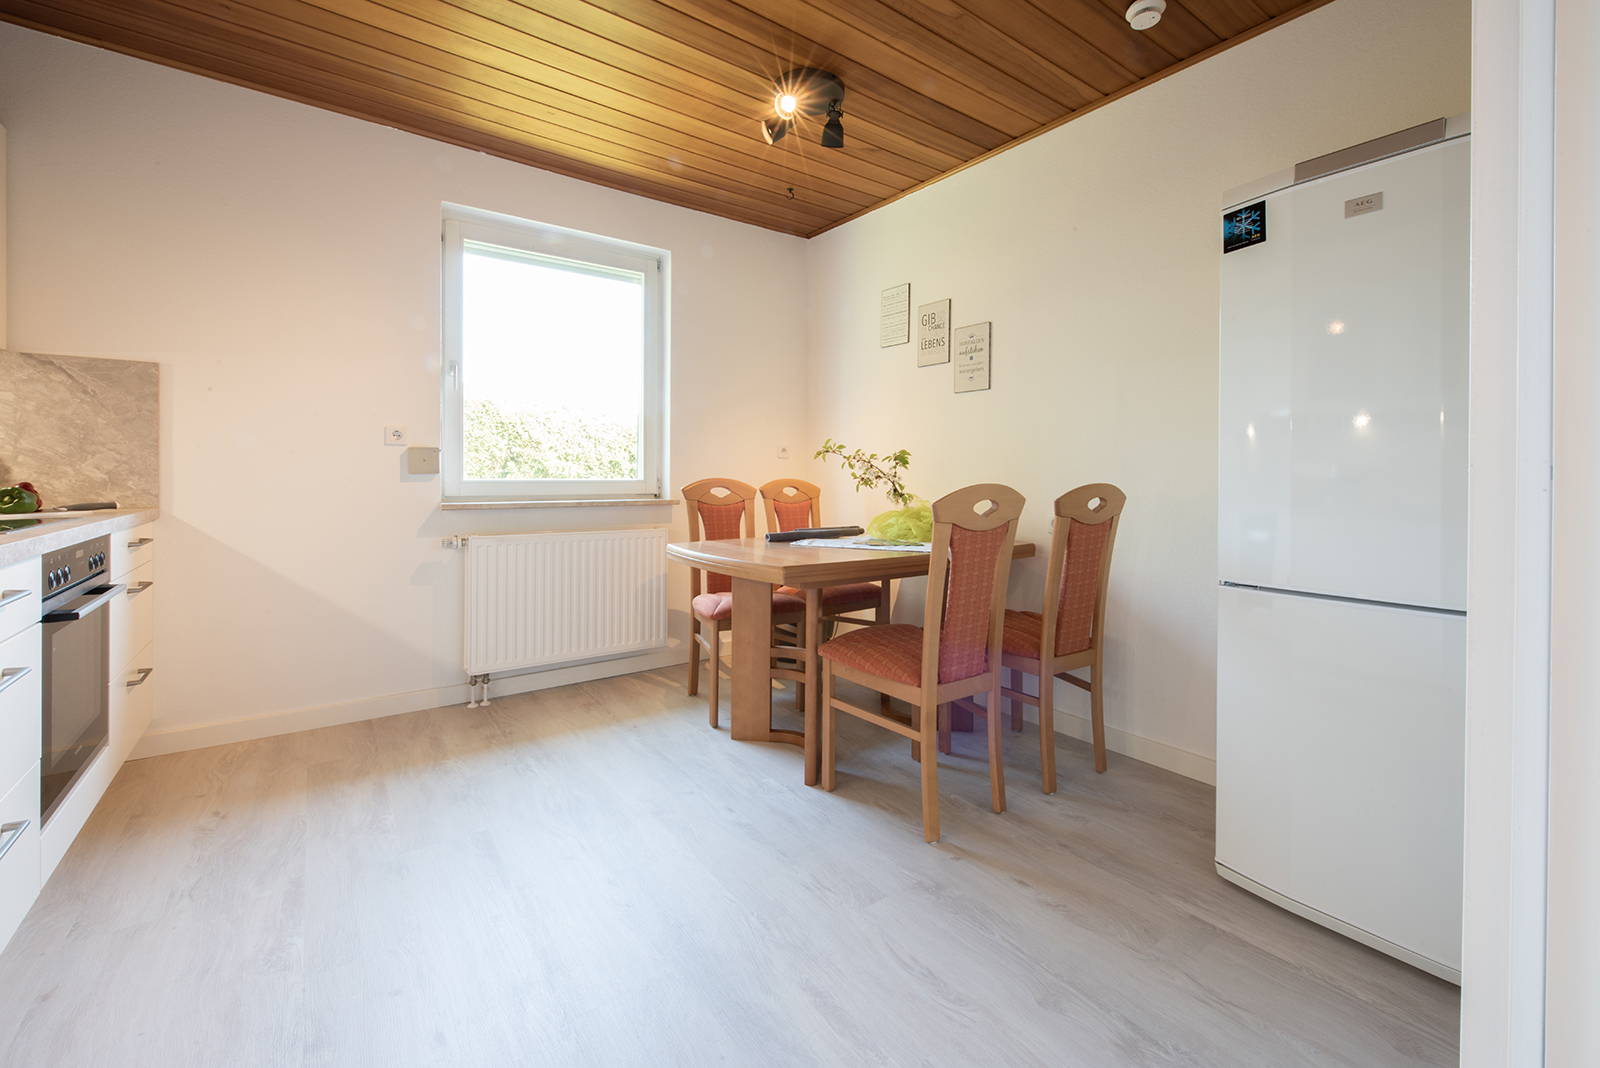 Holiday apartments on Lake Constance: Markdorf - Dining Area